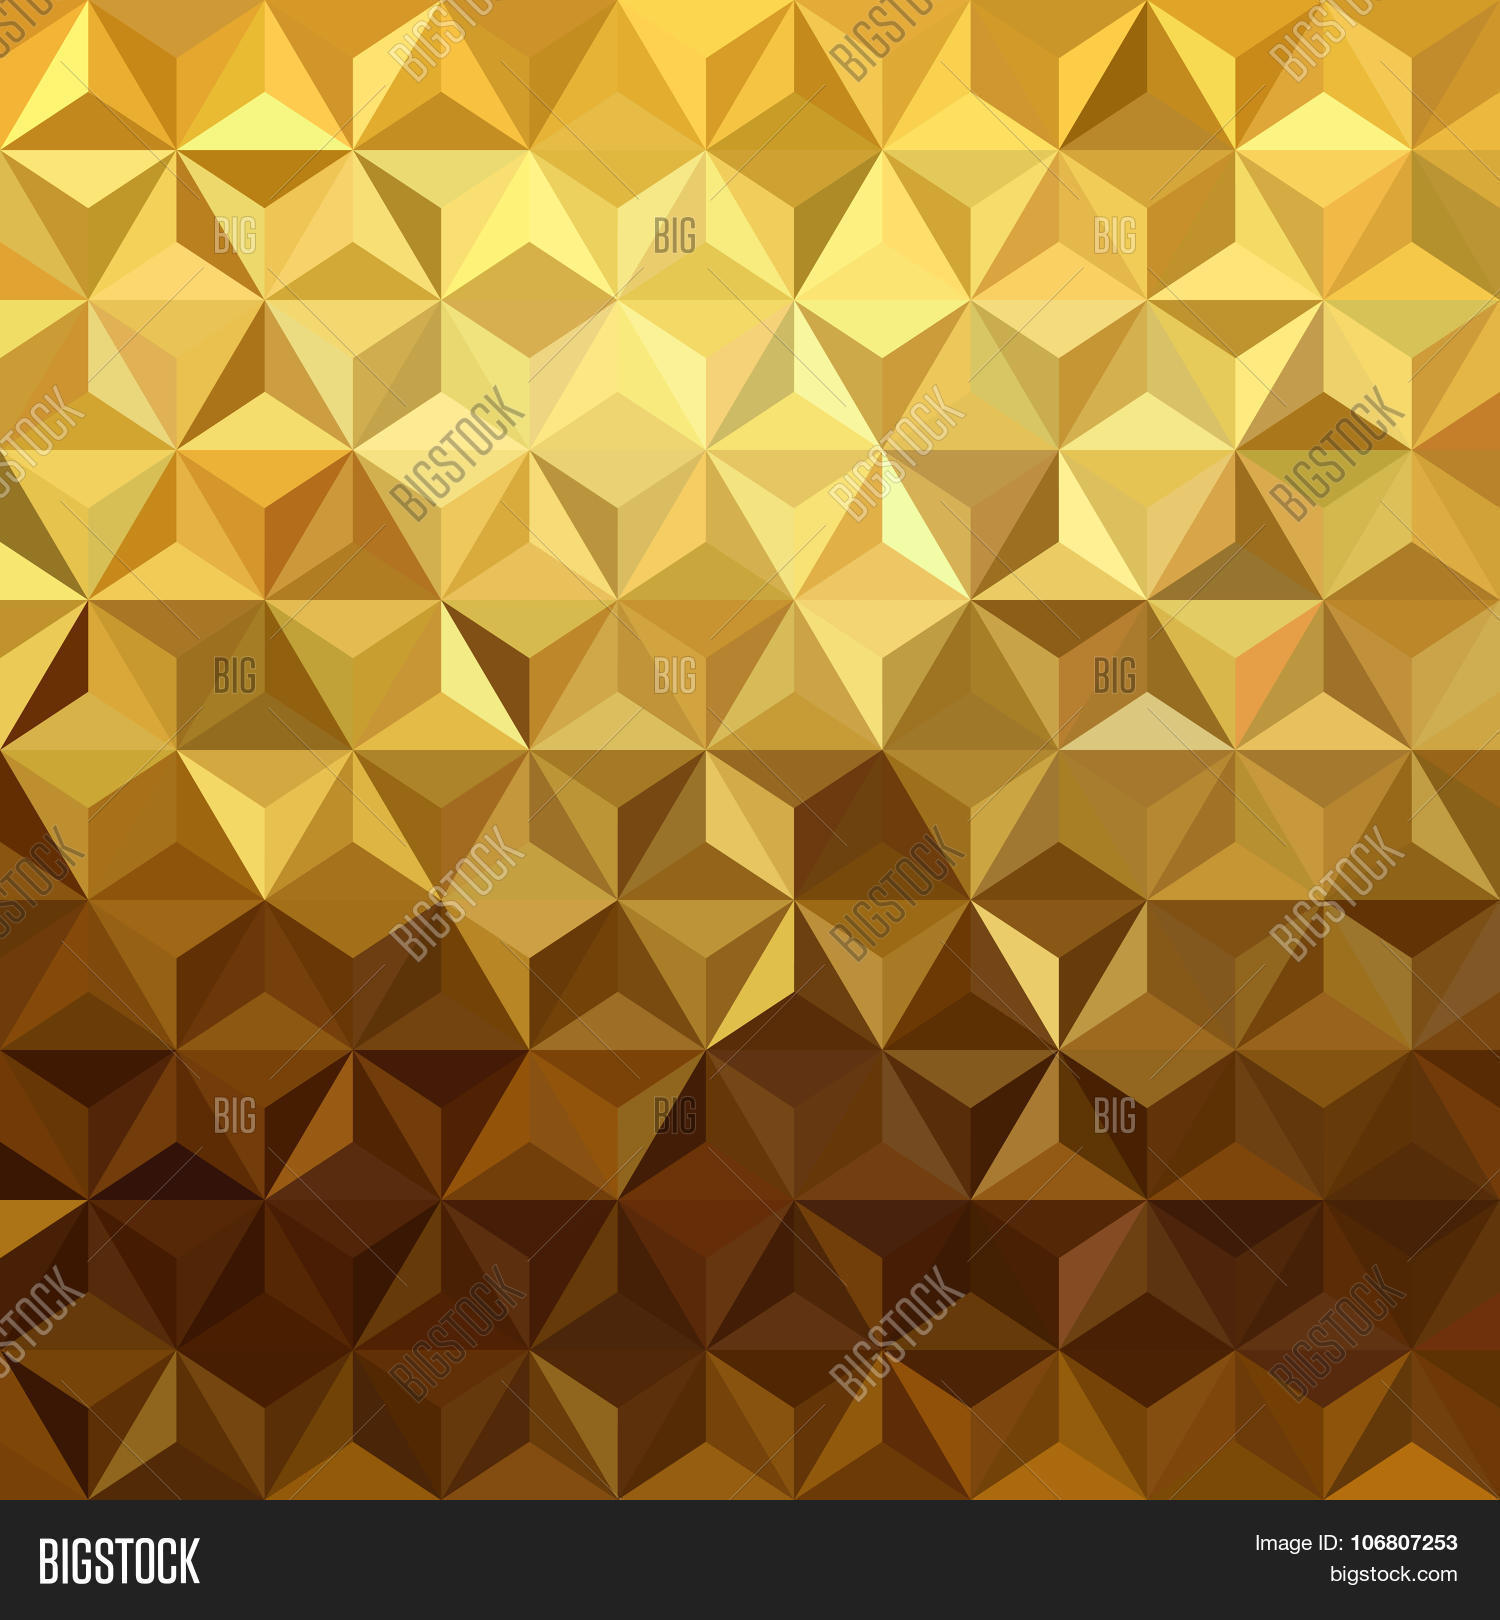 gold pattern low poly 3d triangle vector amp photo bigstock